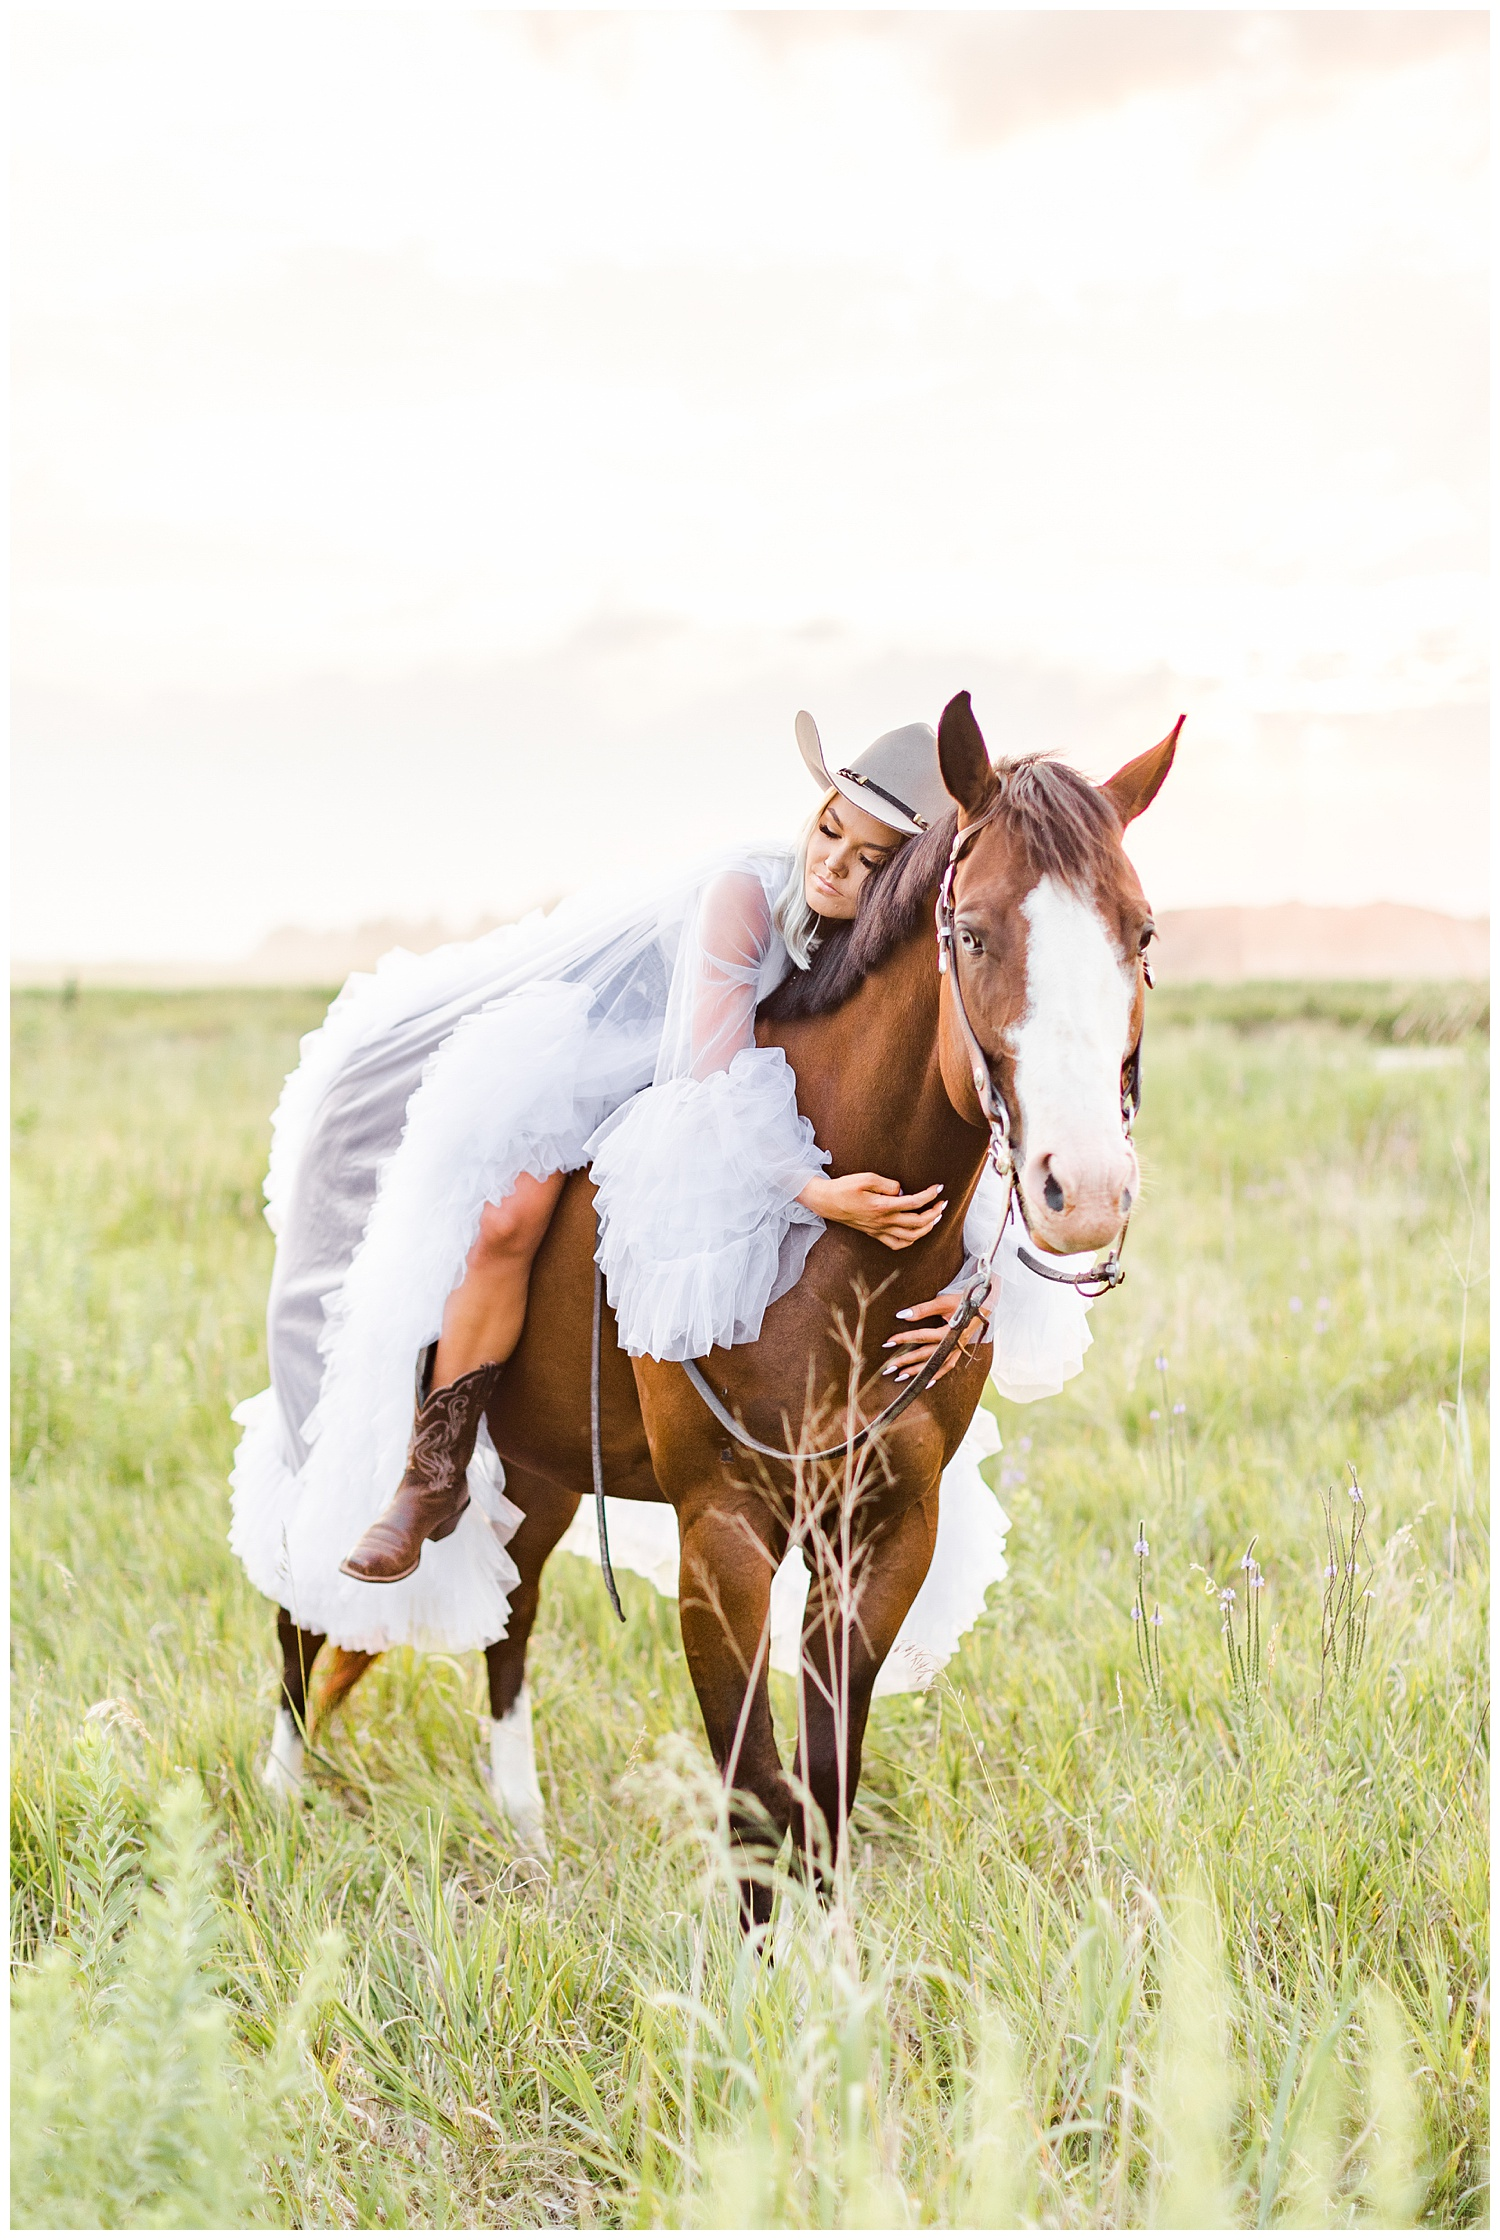 Addison wearing a puffy tulle dress snuggles Miss Flirty the horse in a grassy field   CB Studio